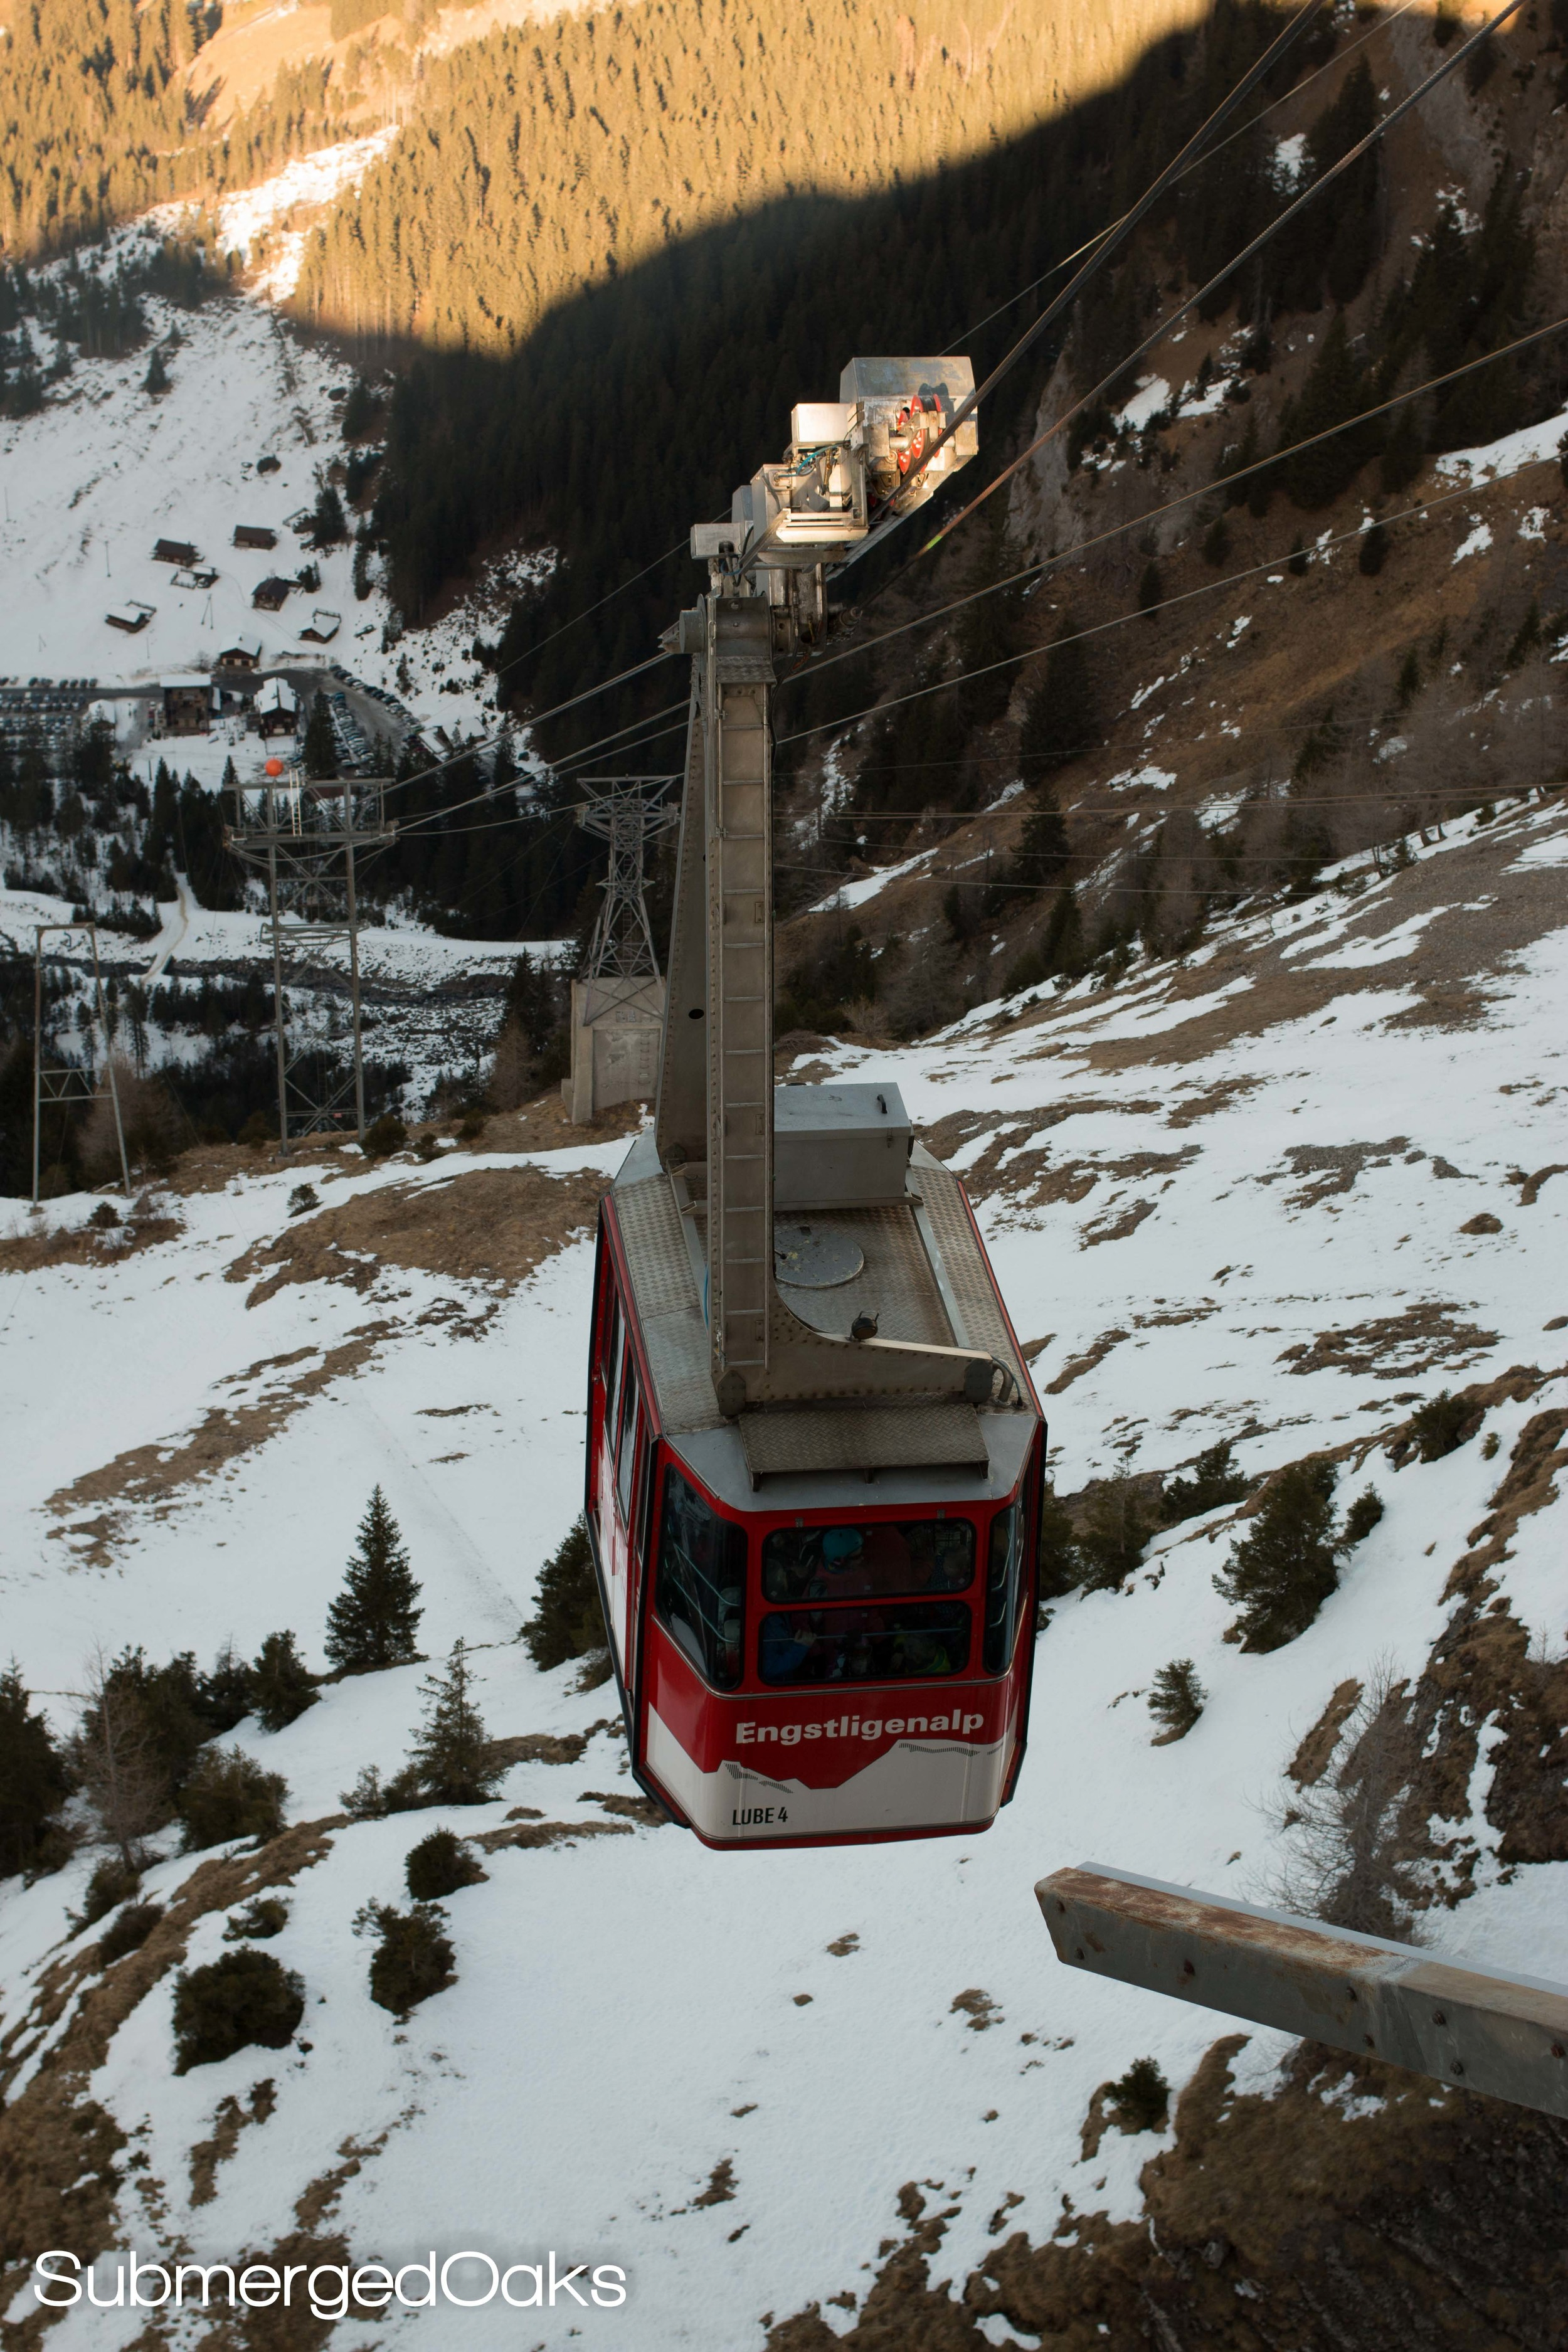 Cable car we took to ride to the top of the mountain